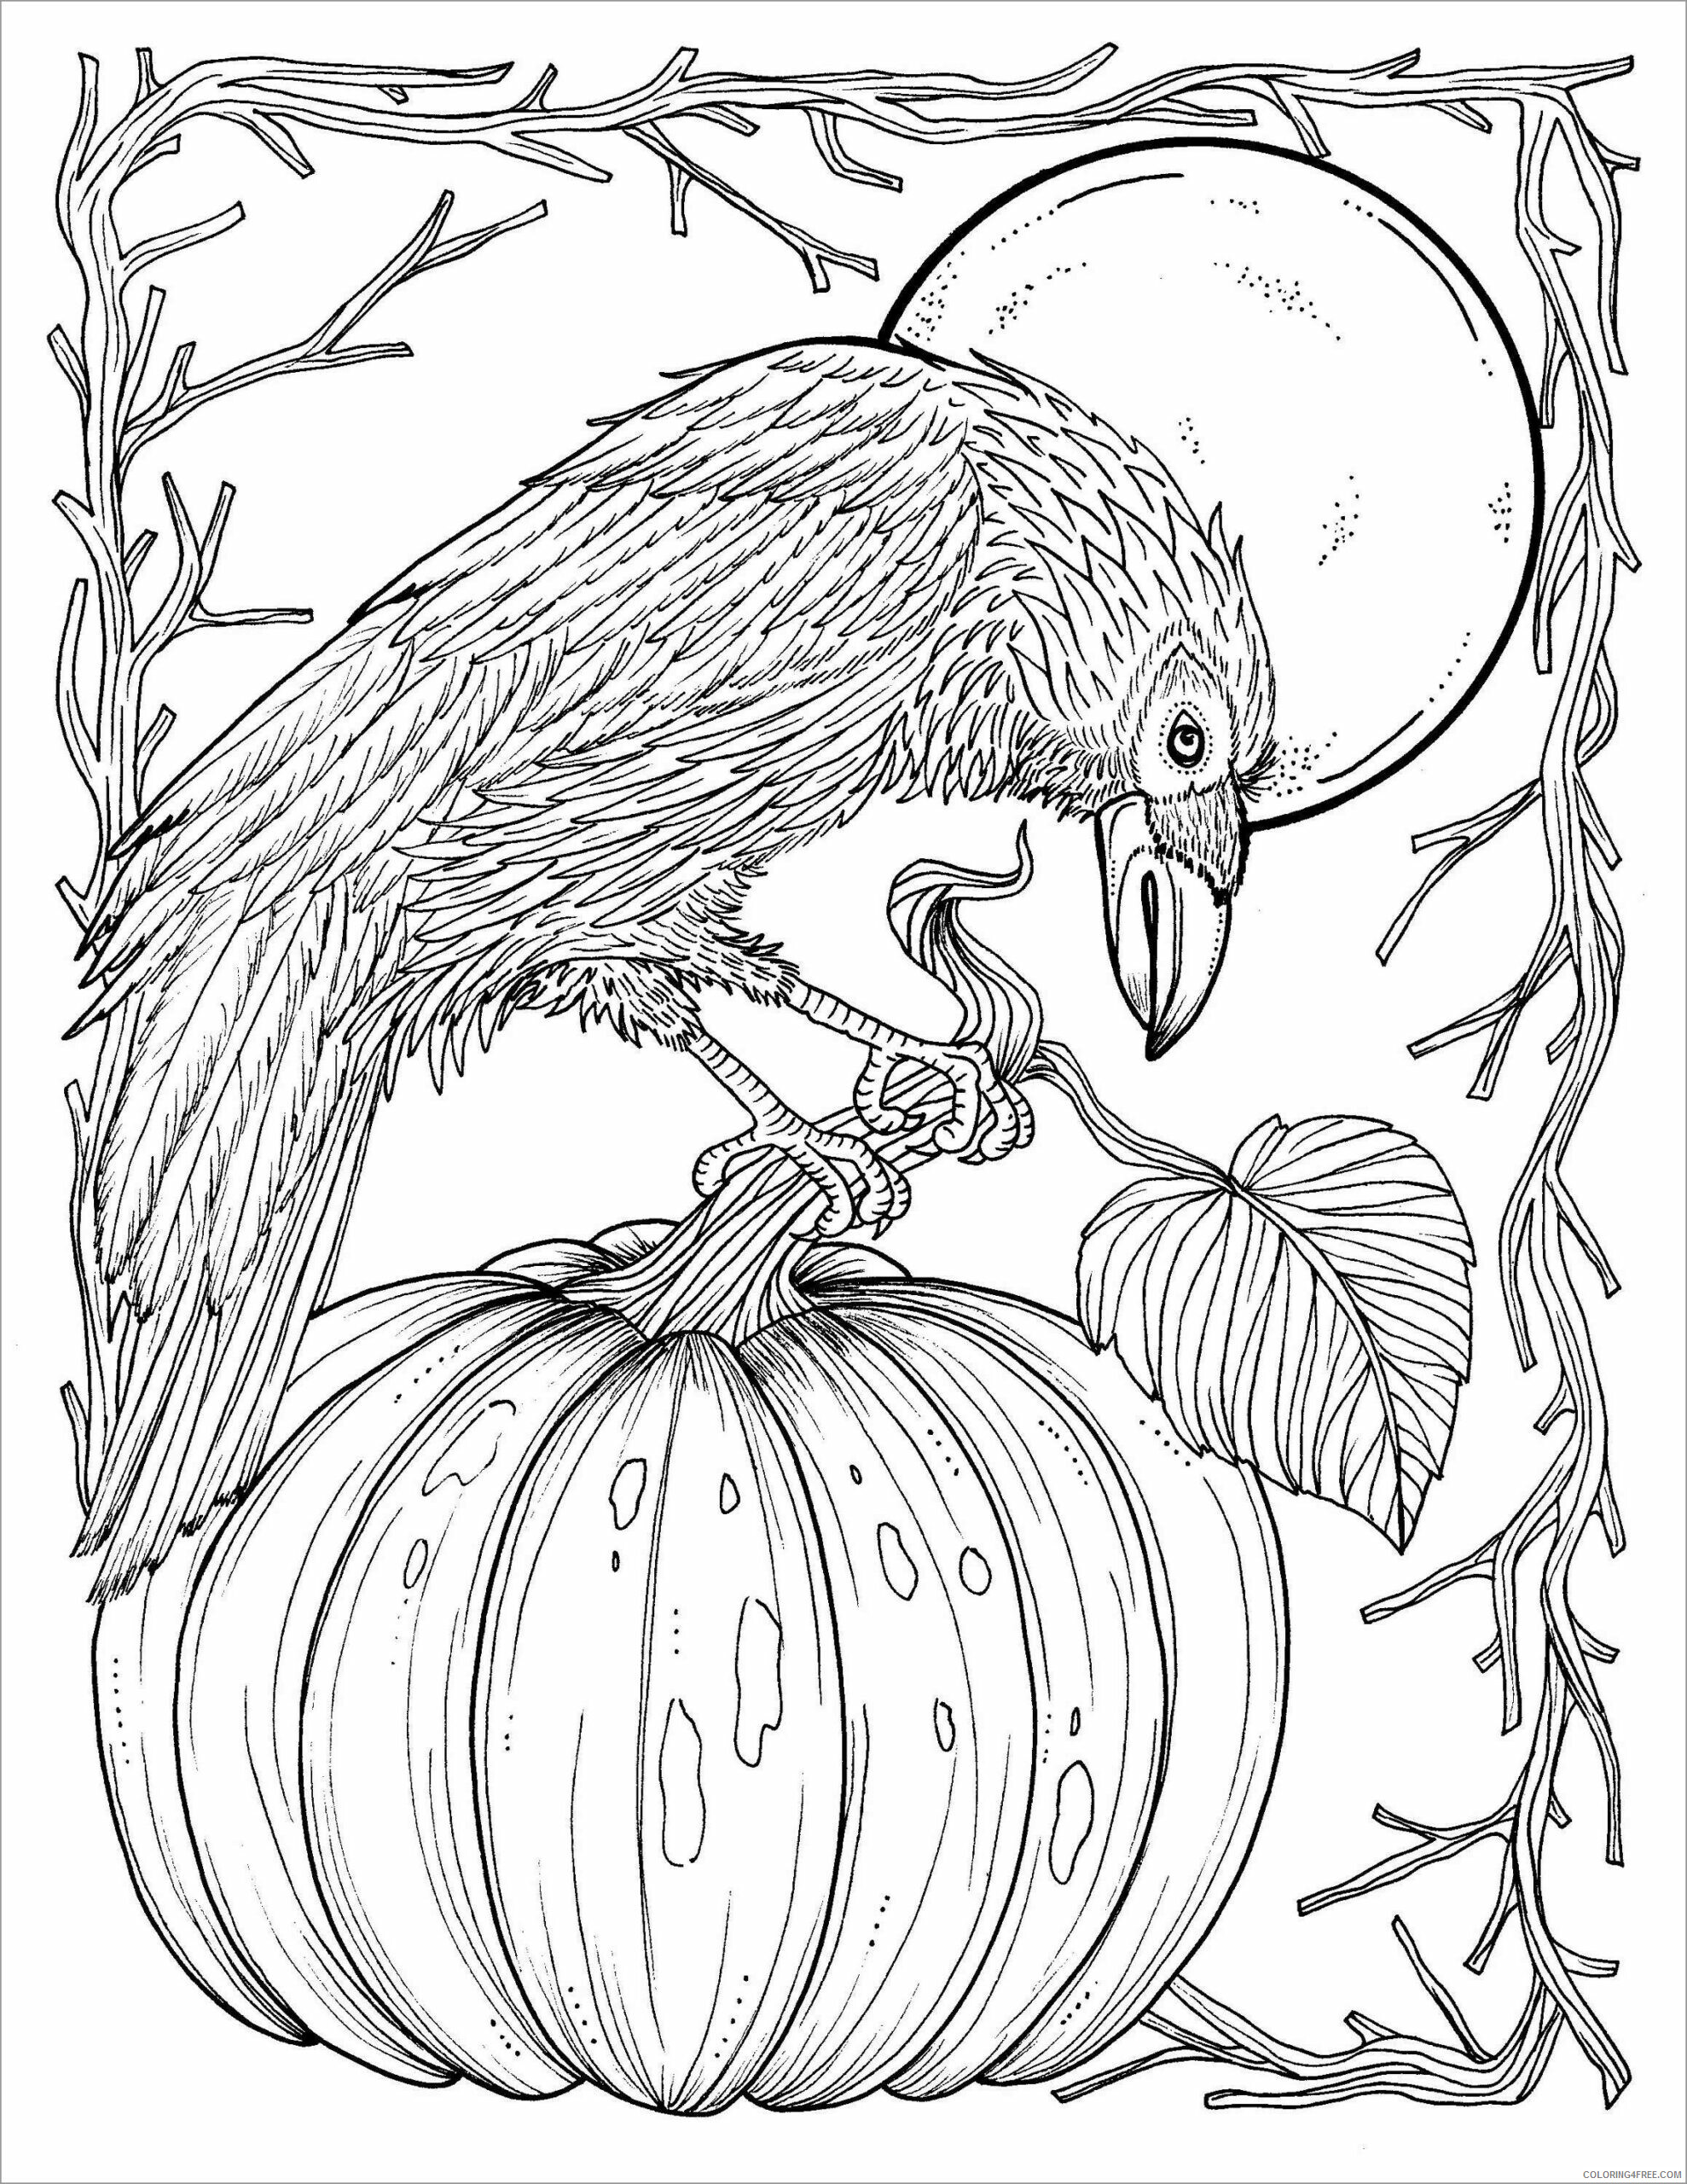 Adult Animals Coloring Pages crow for adult Printable 2020 141 Coloring4free